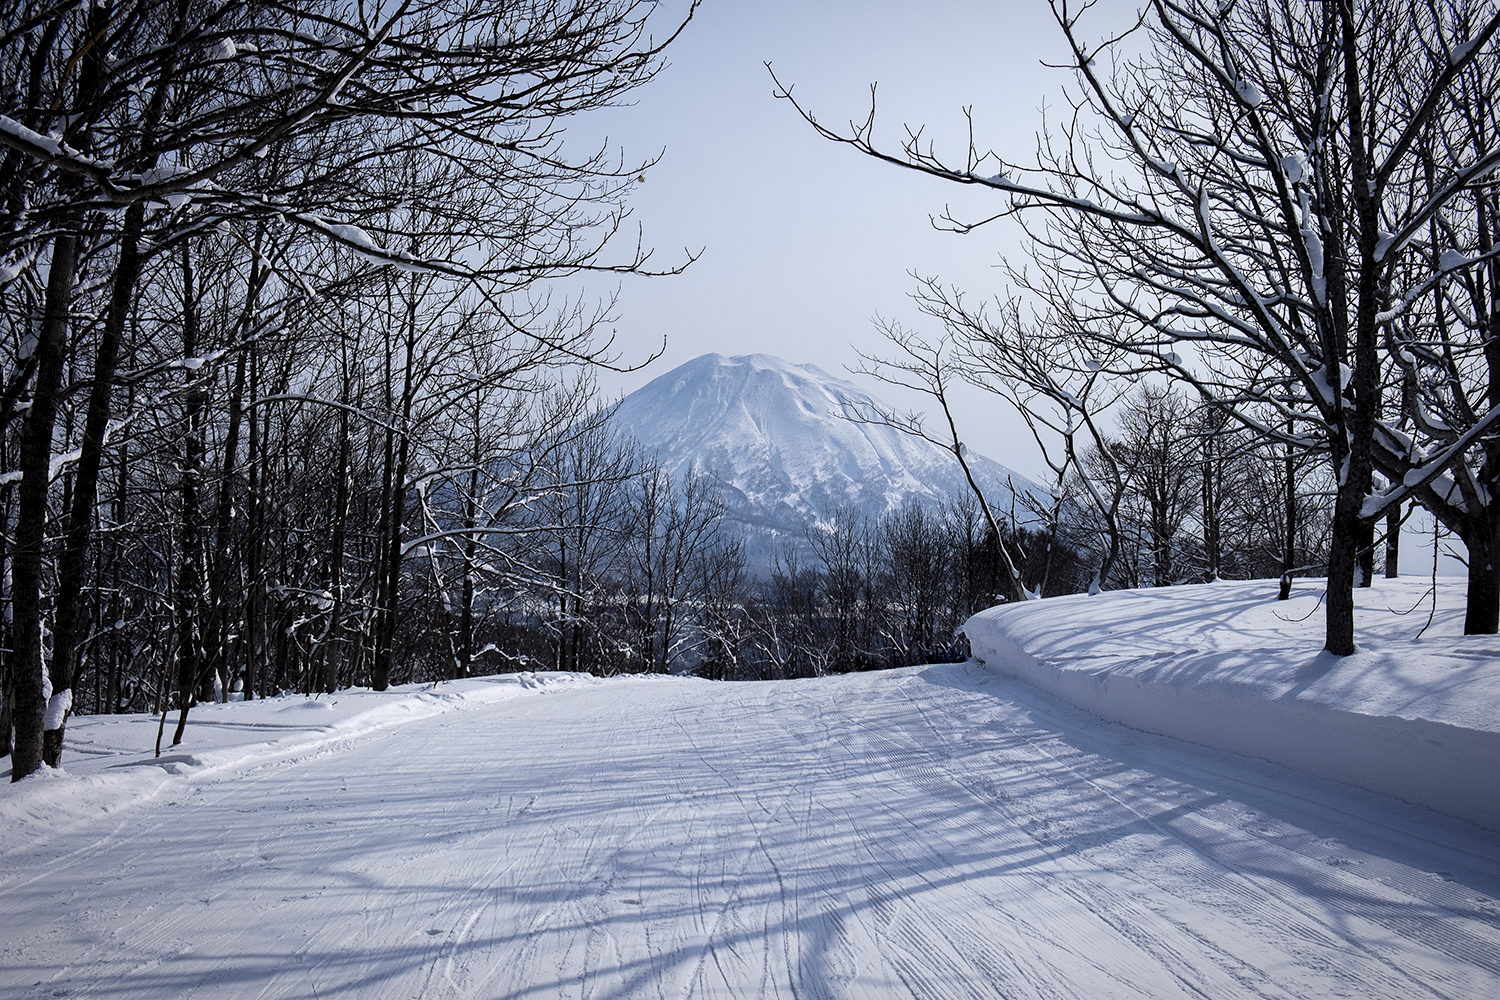 The view of Mt Yotei during our ride down the mountain.